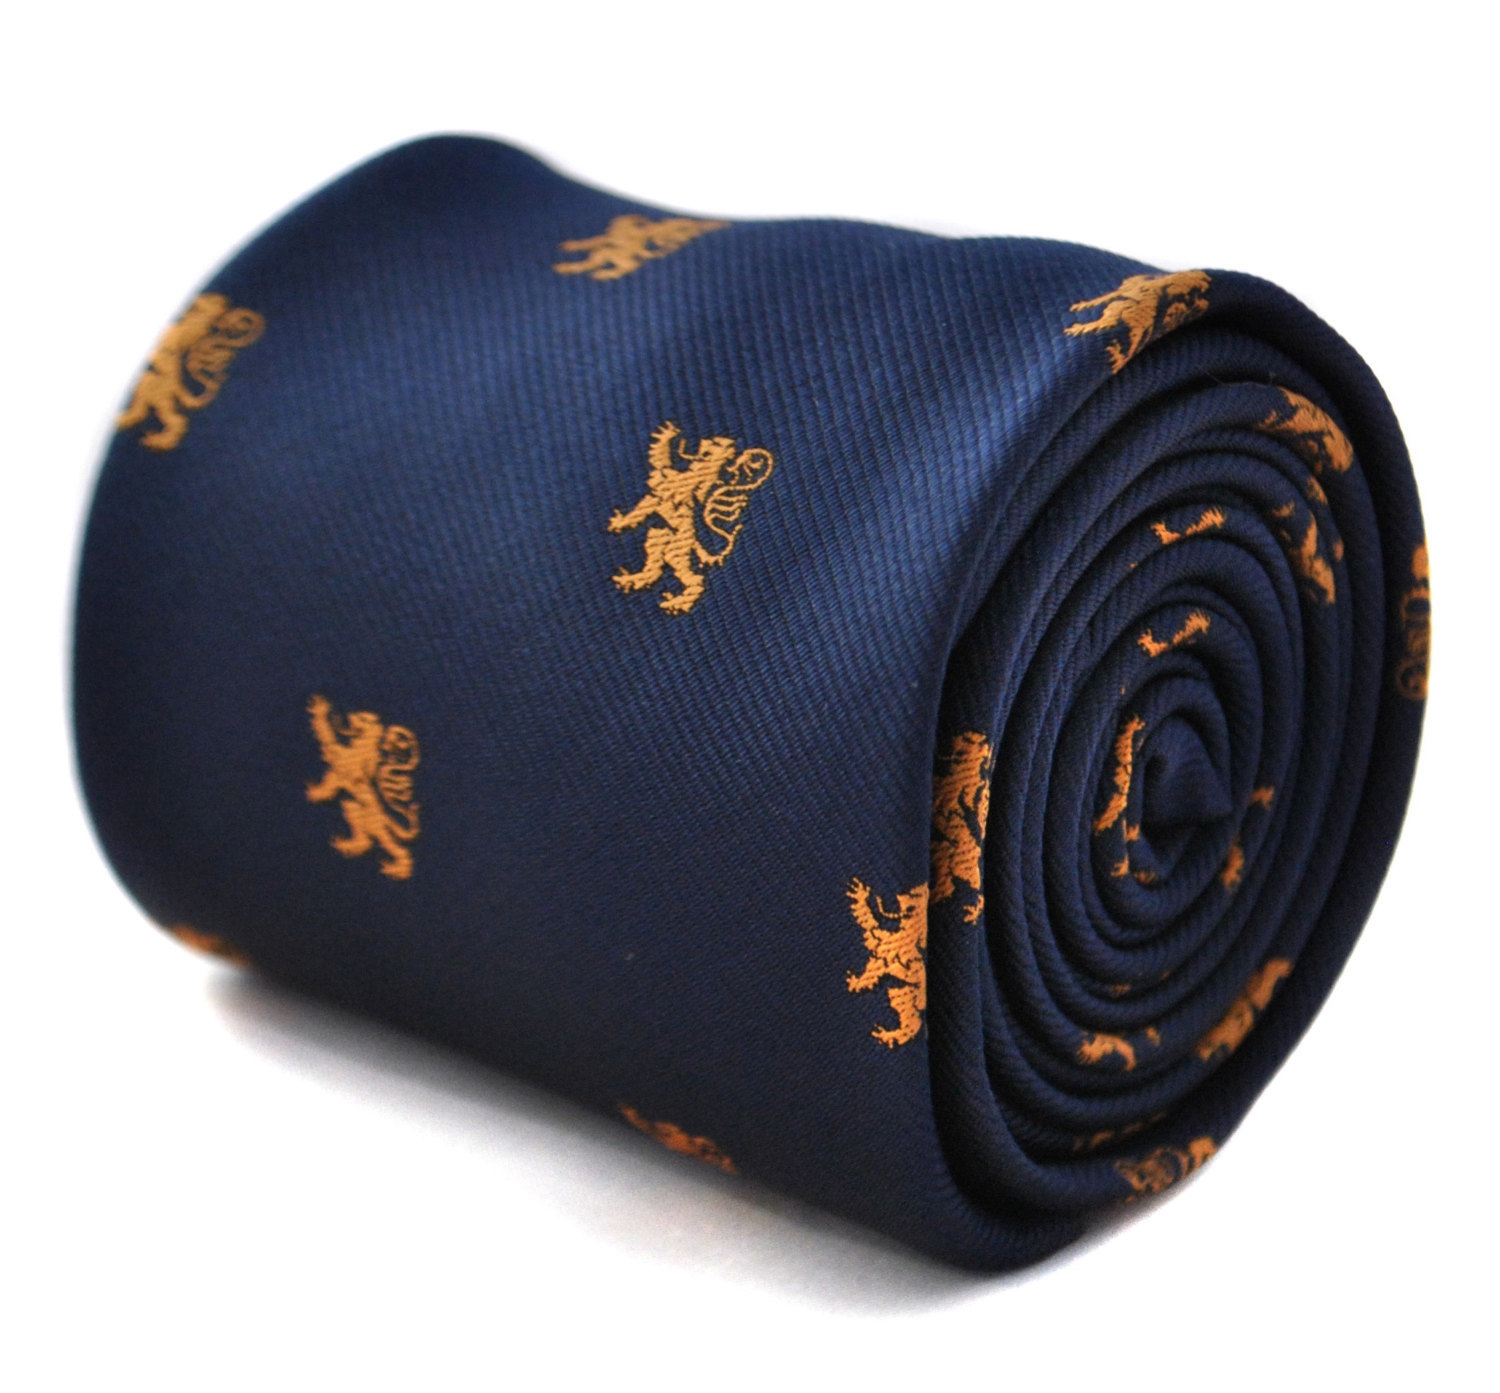 Navy tie with scottish lion design with signature floral design to the rear by F